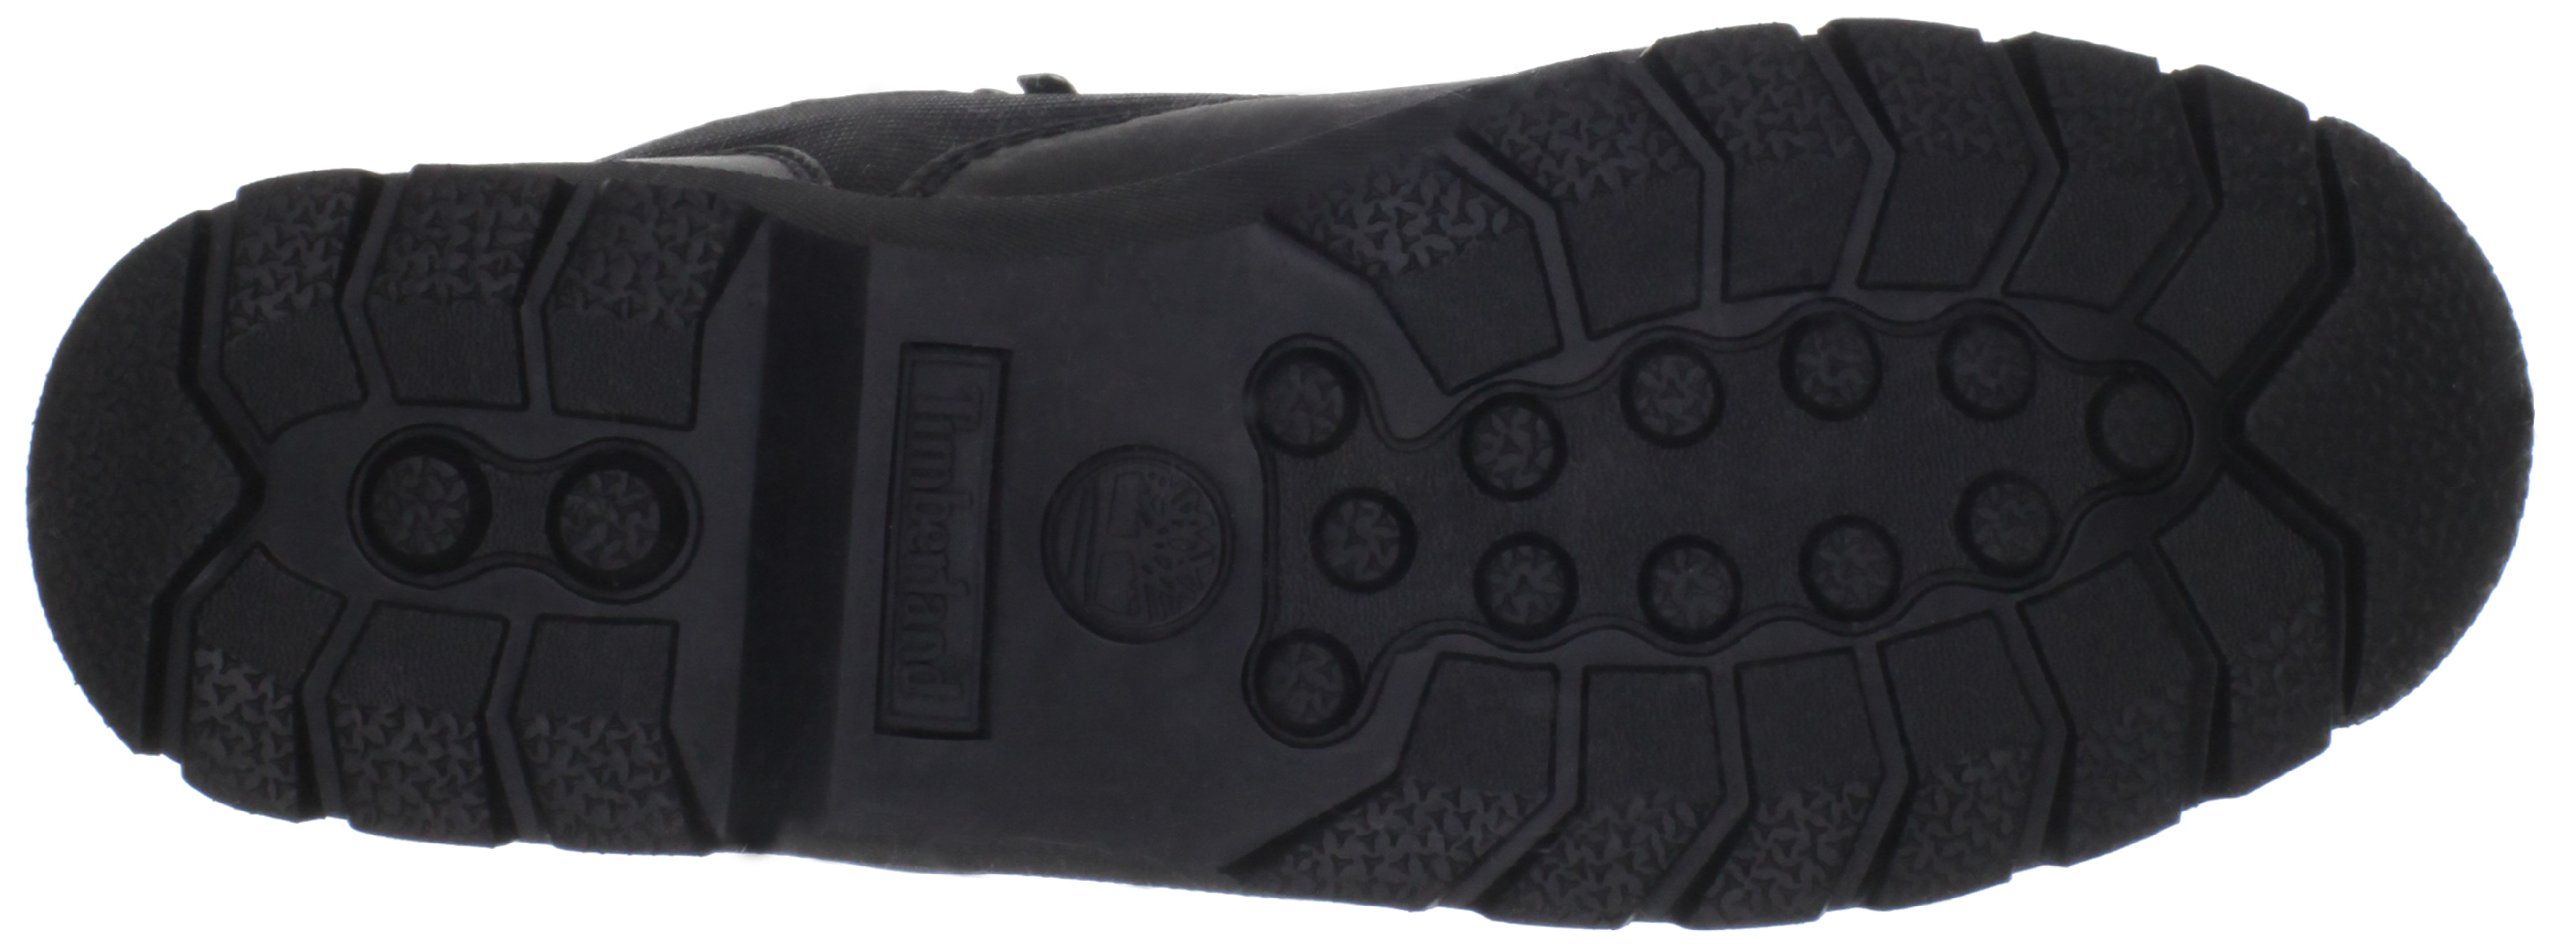 Timberland Men's Euro Boot,Black Smooth,10.5 M US by Timberland (Image #3)